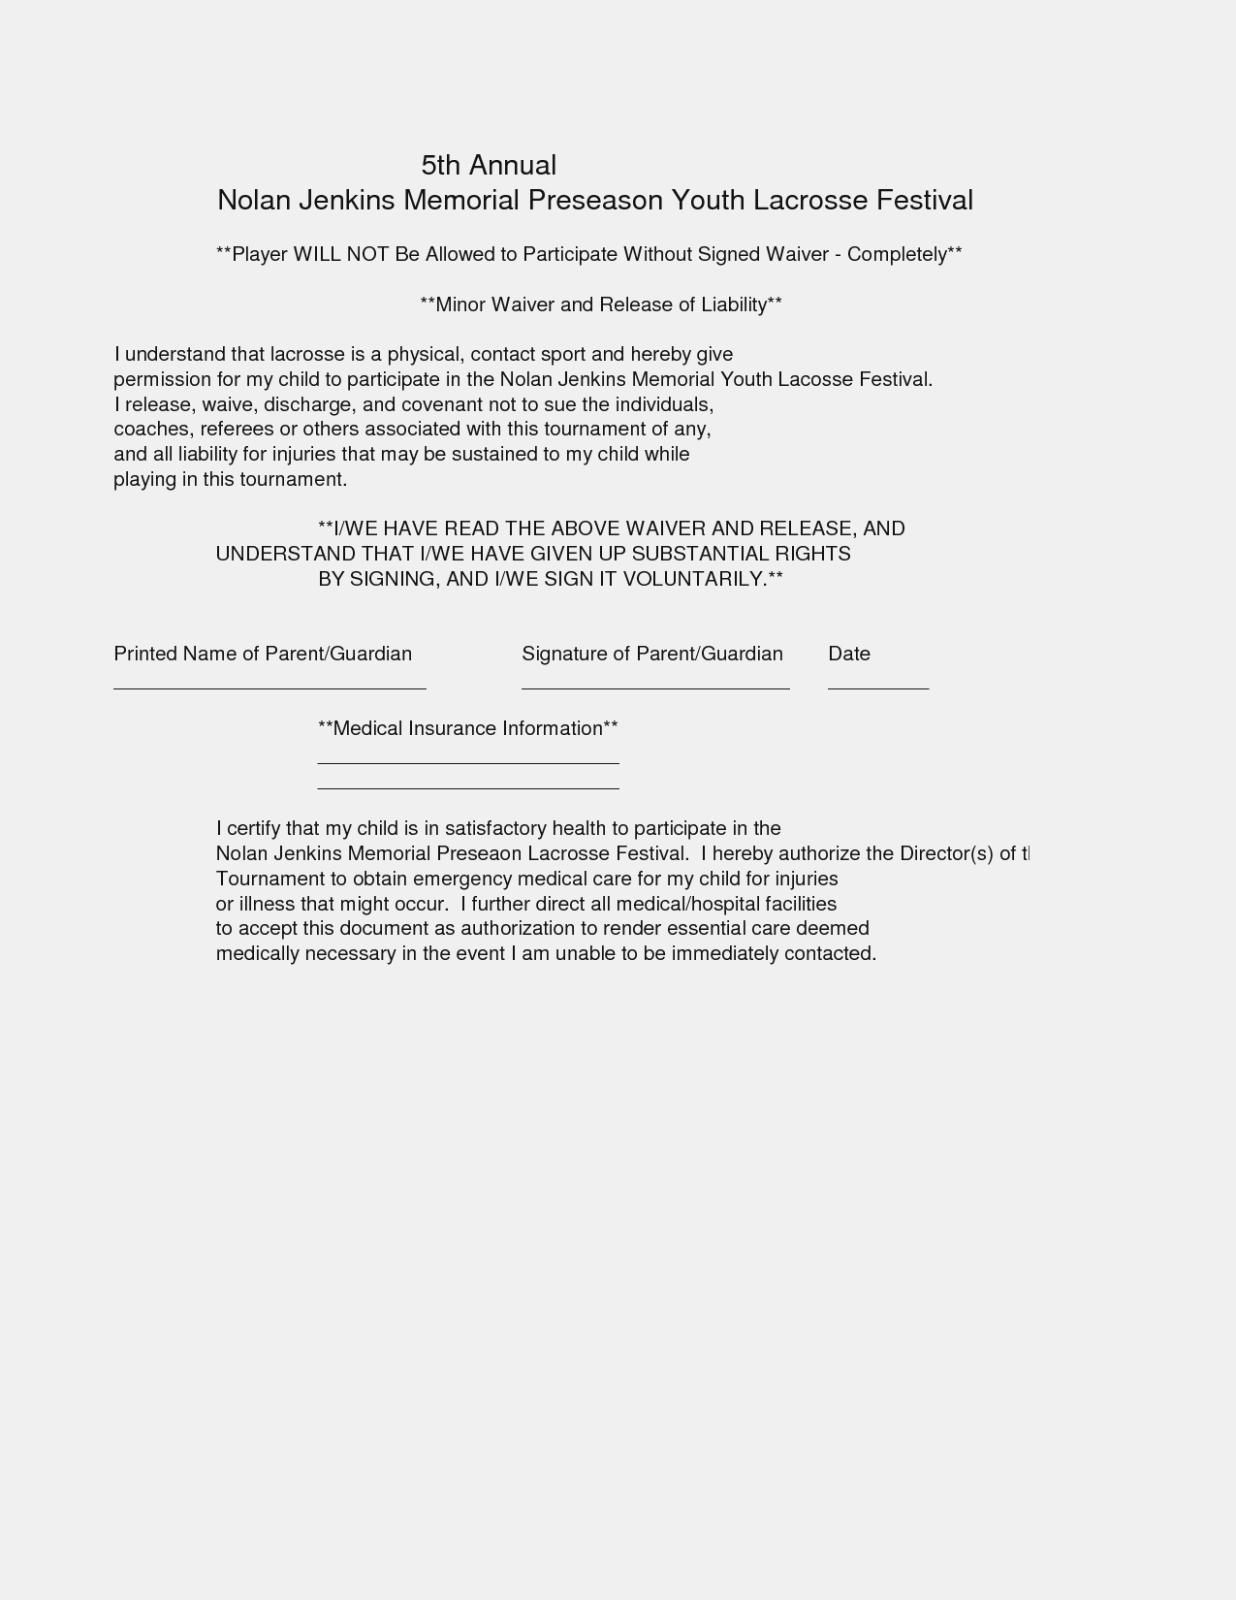 Child Care Liability Waiver Form